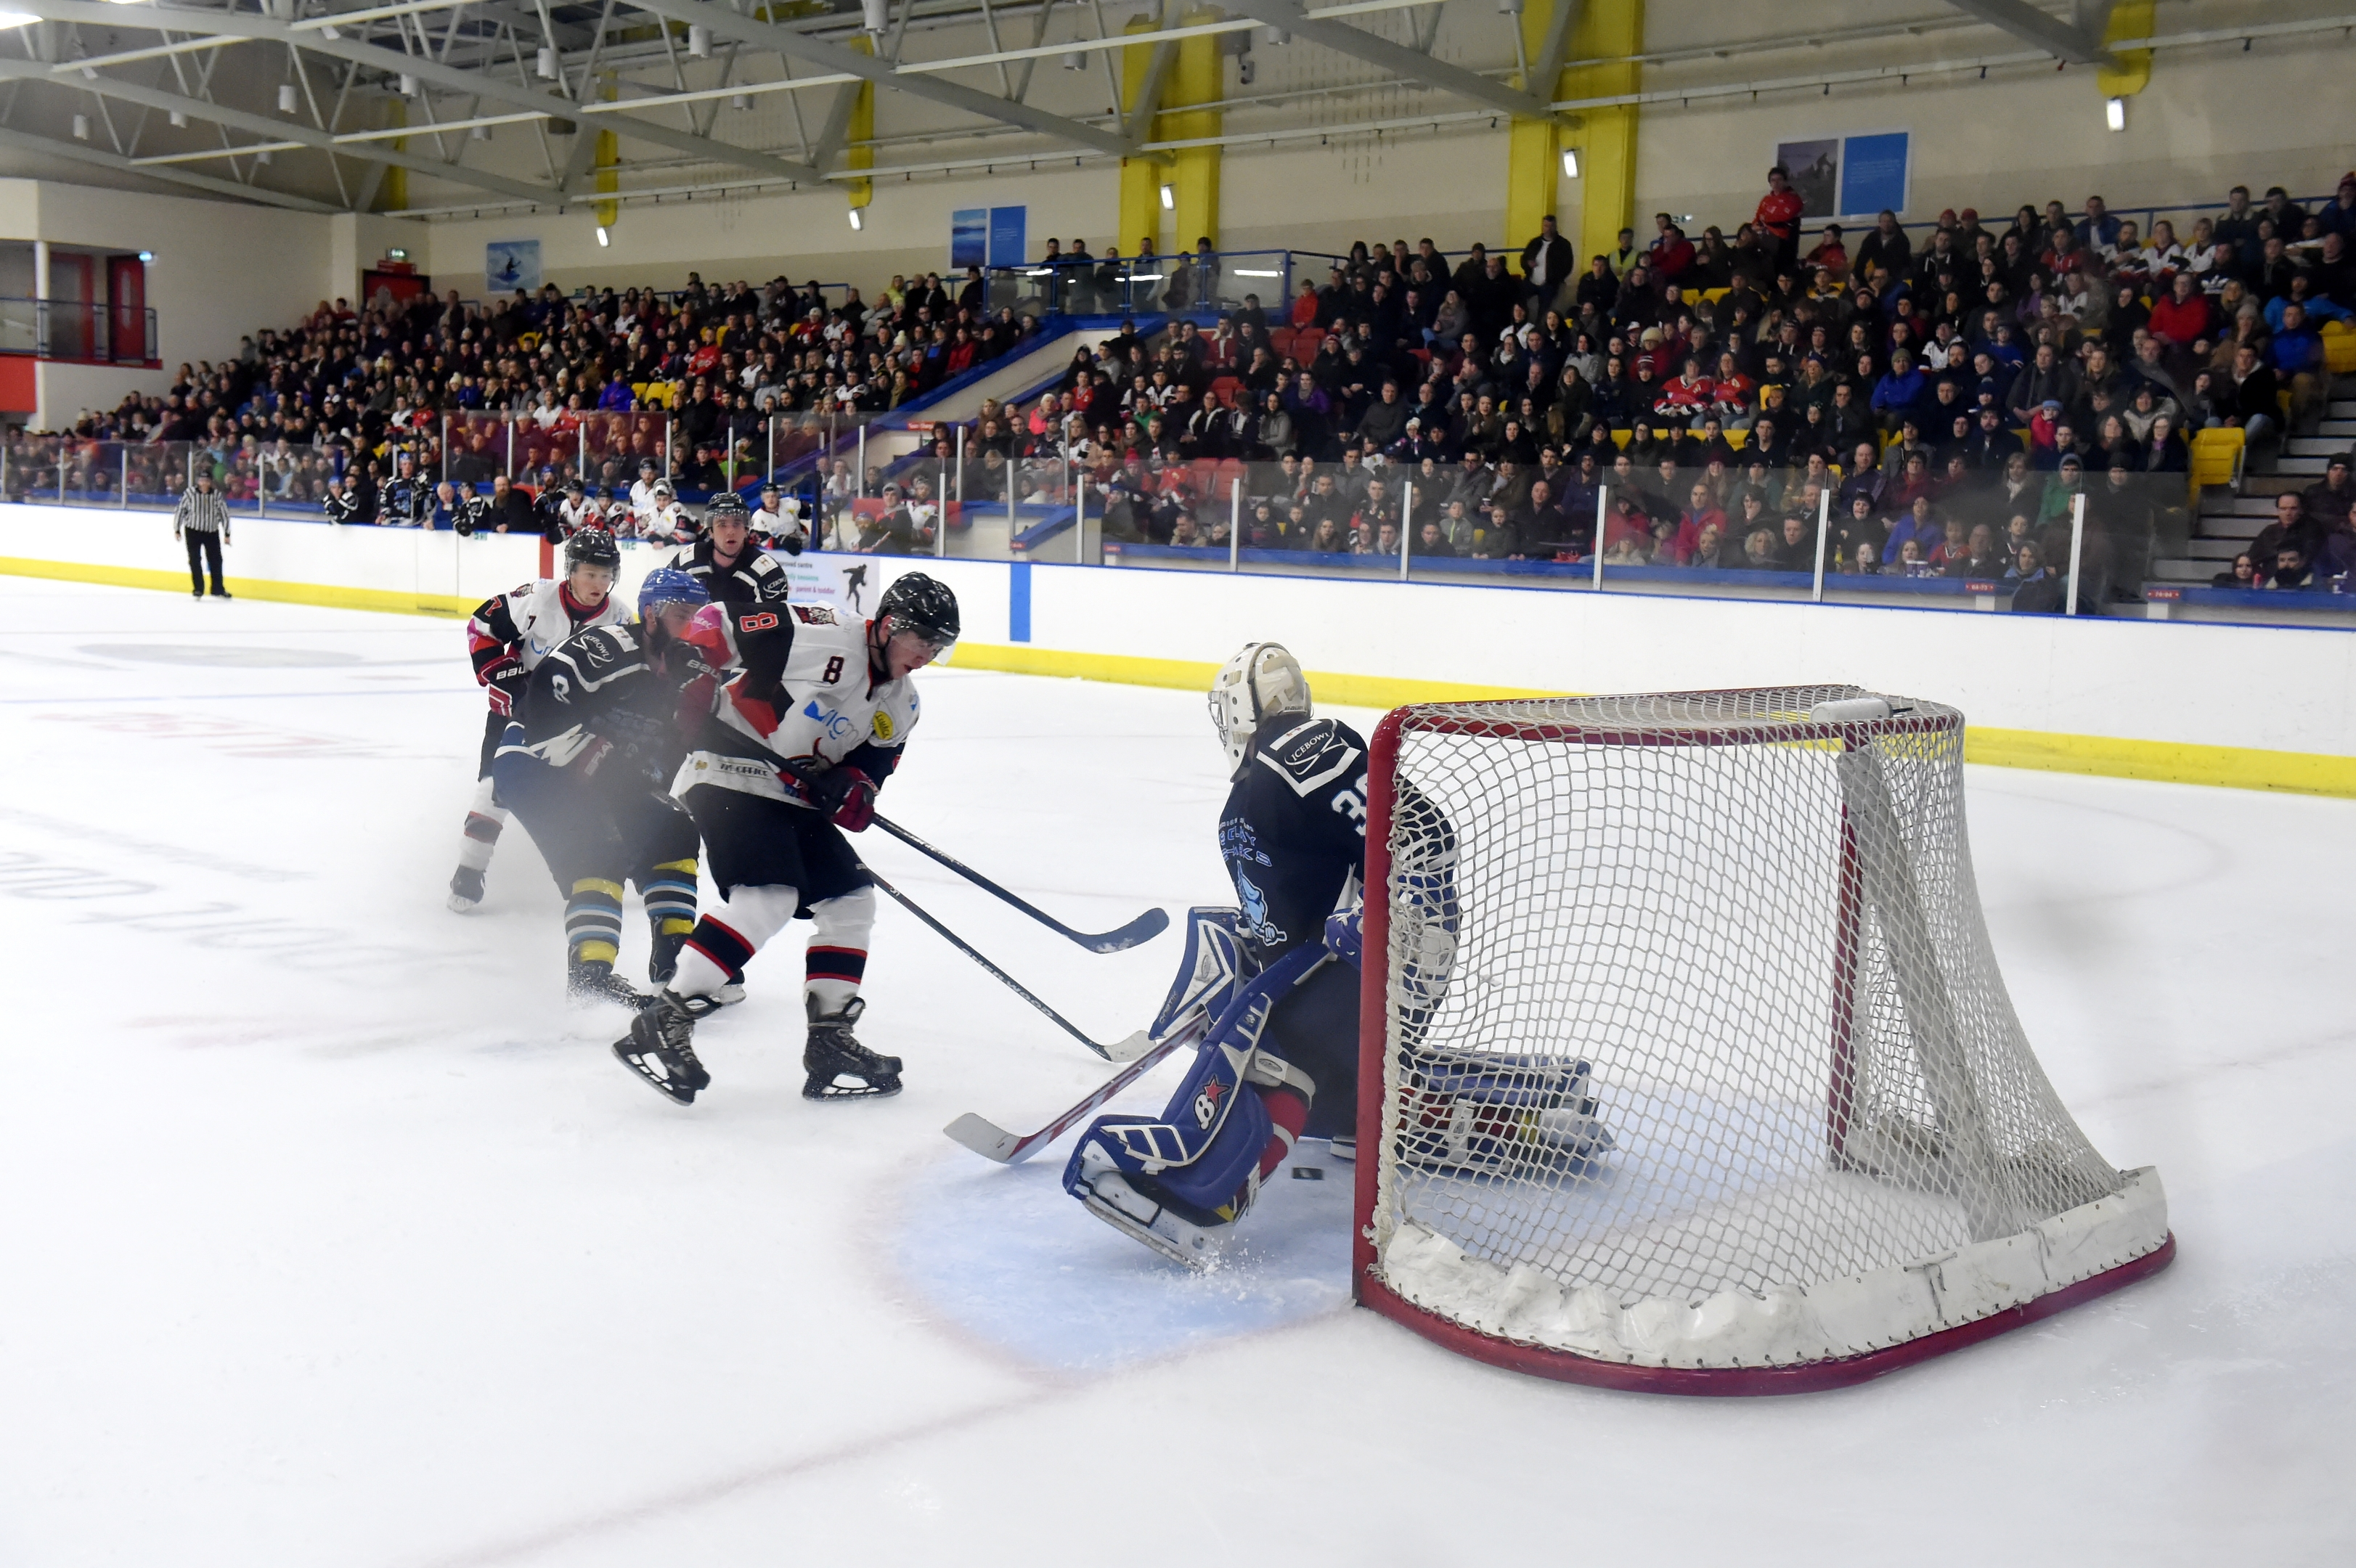 Scottish National League  at The Linx Ice Arena